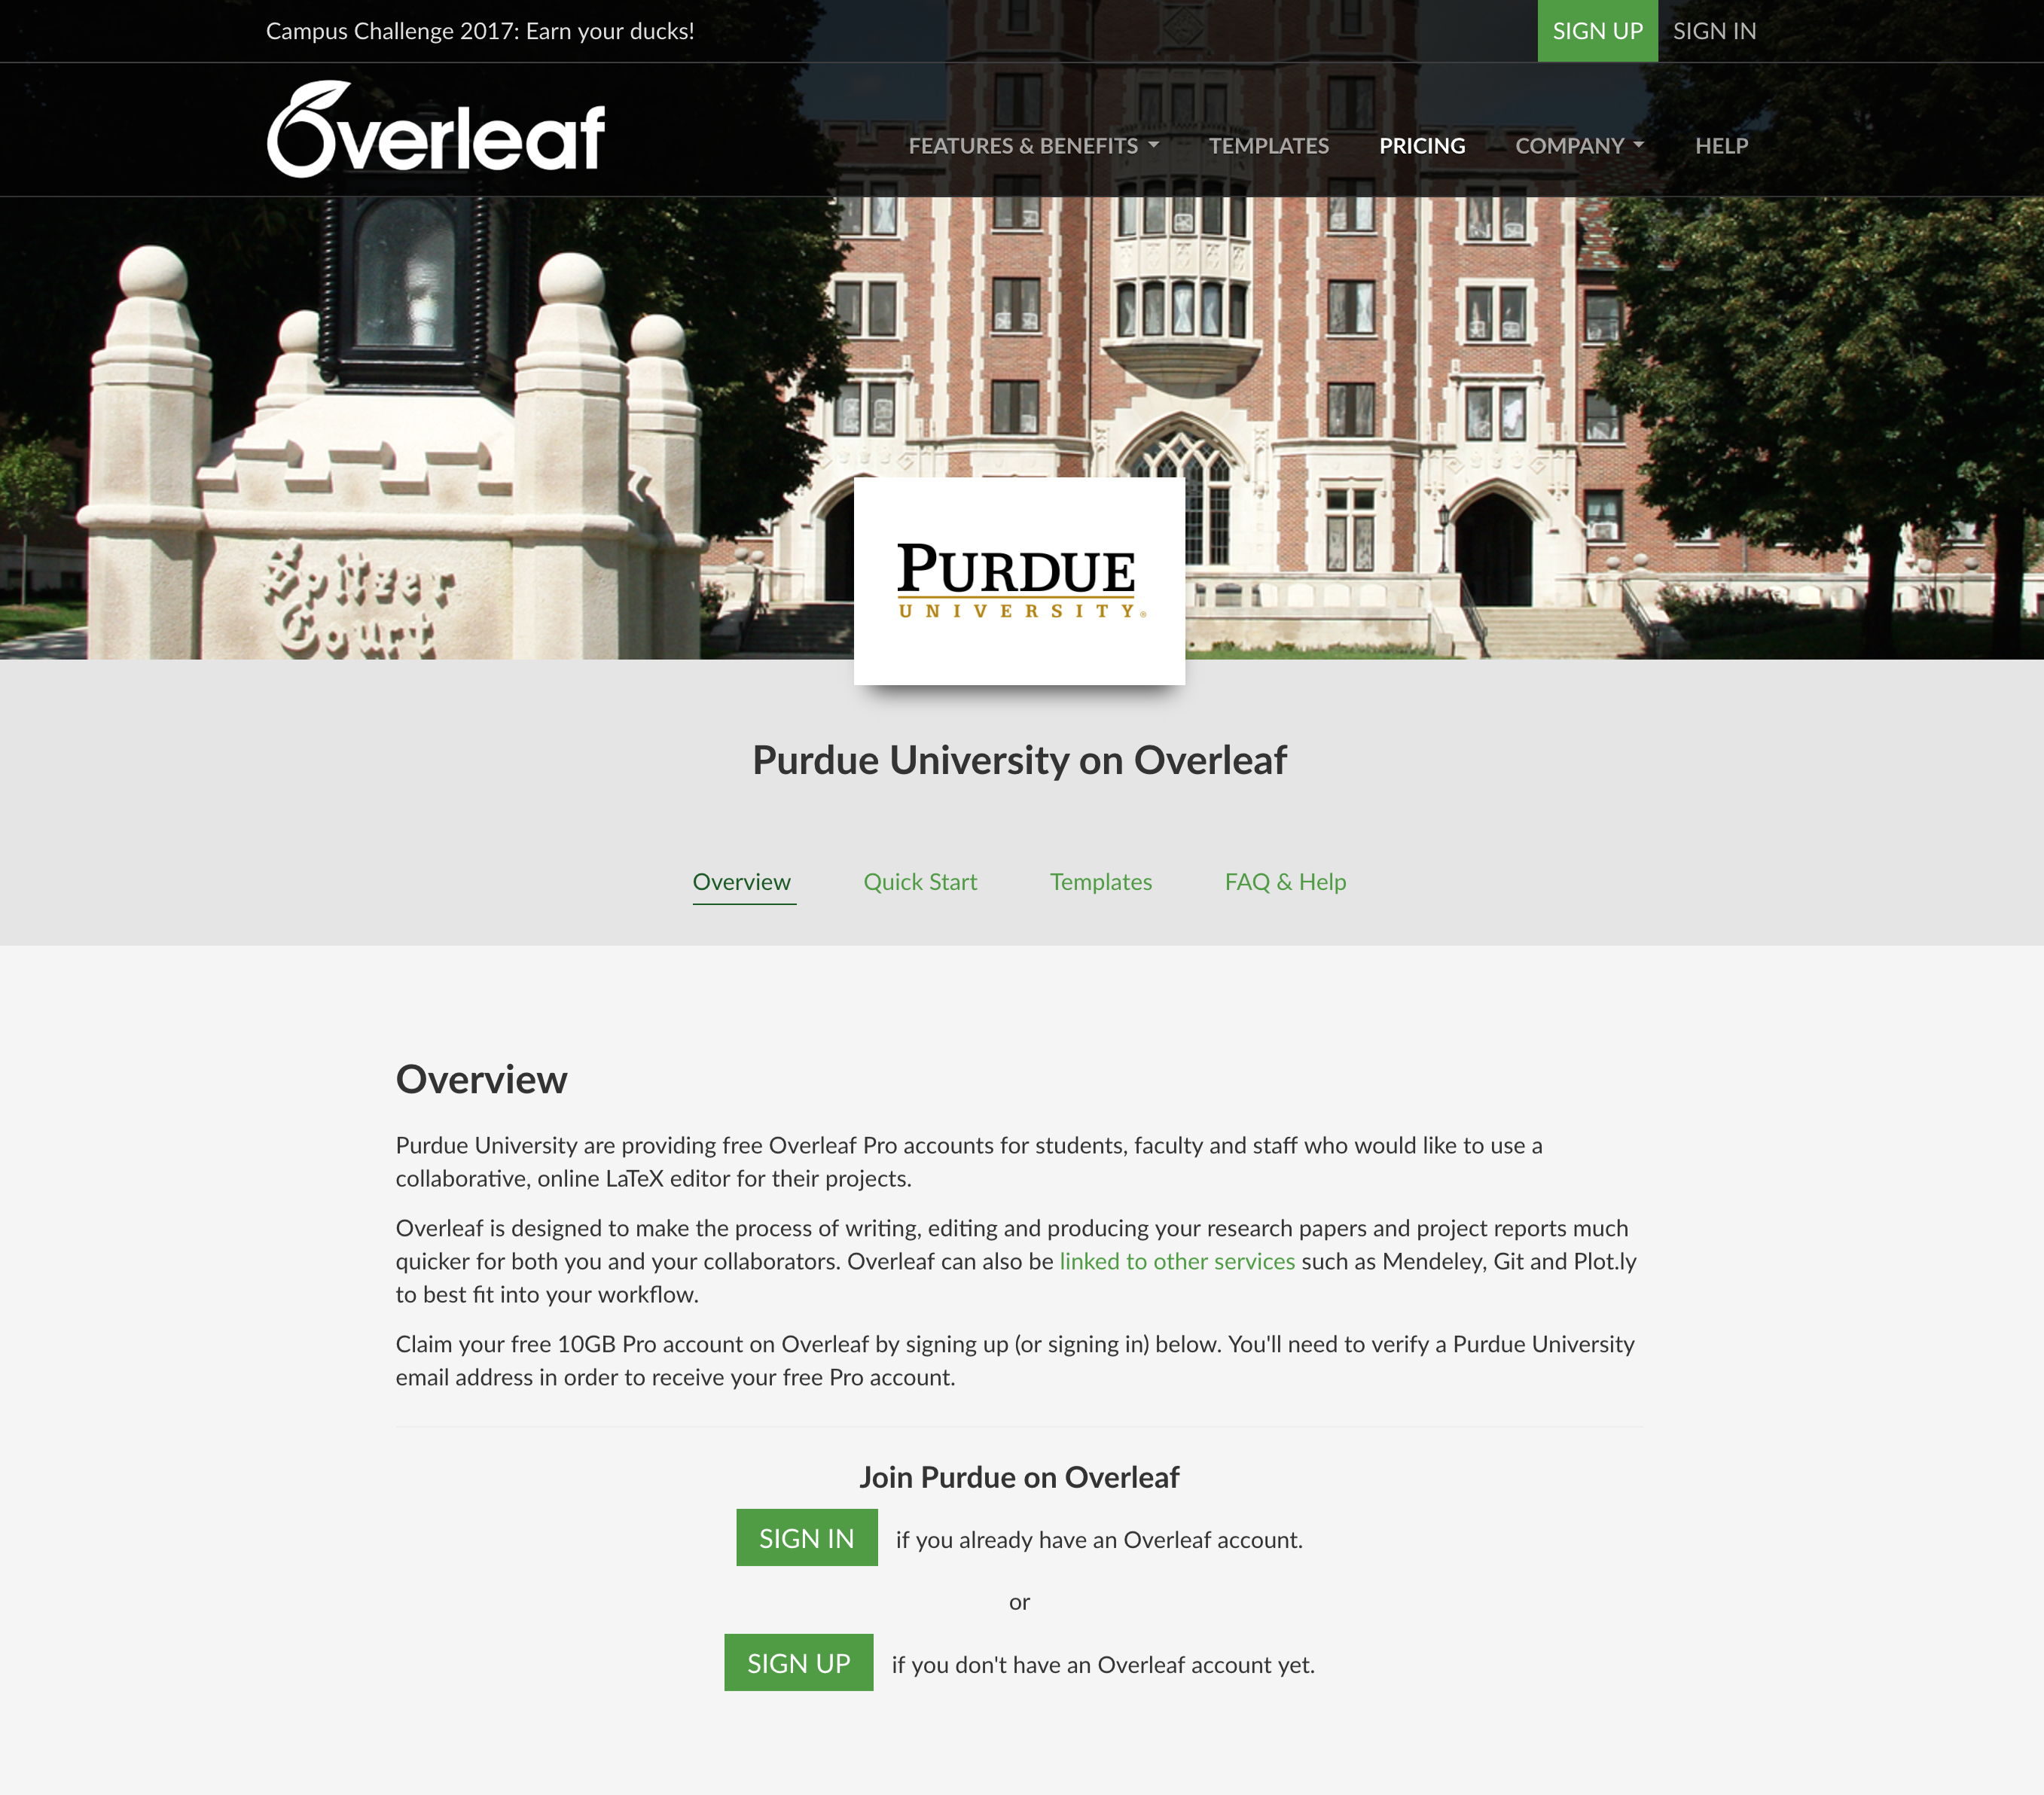 Purdue Institutional Portal